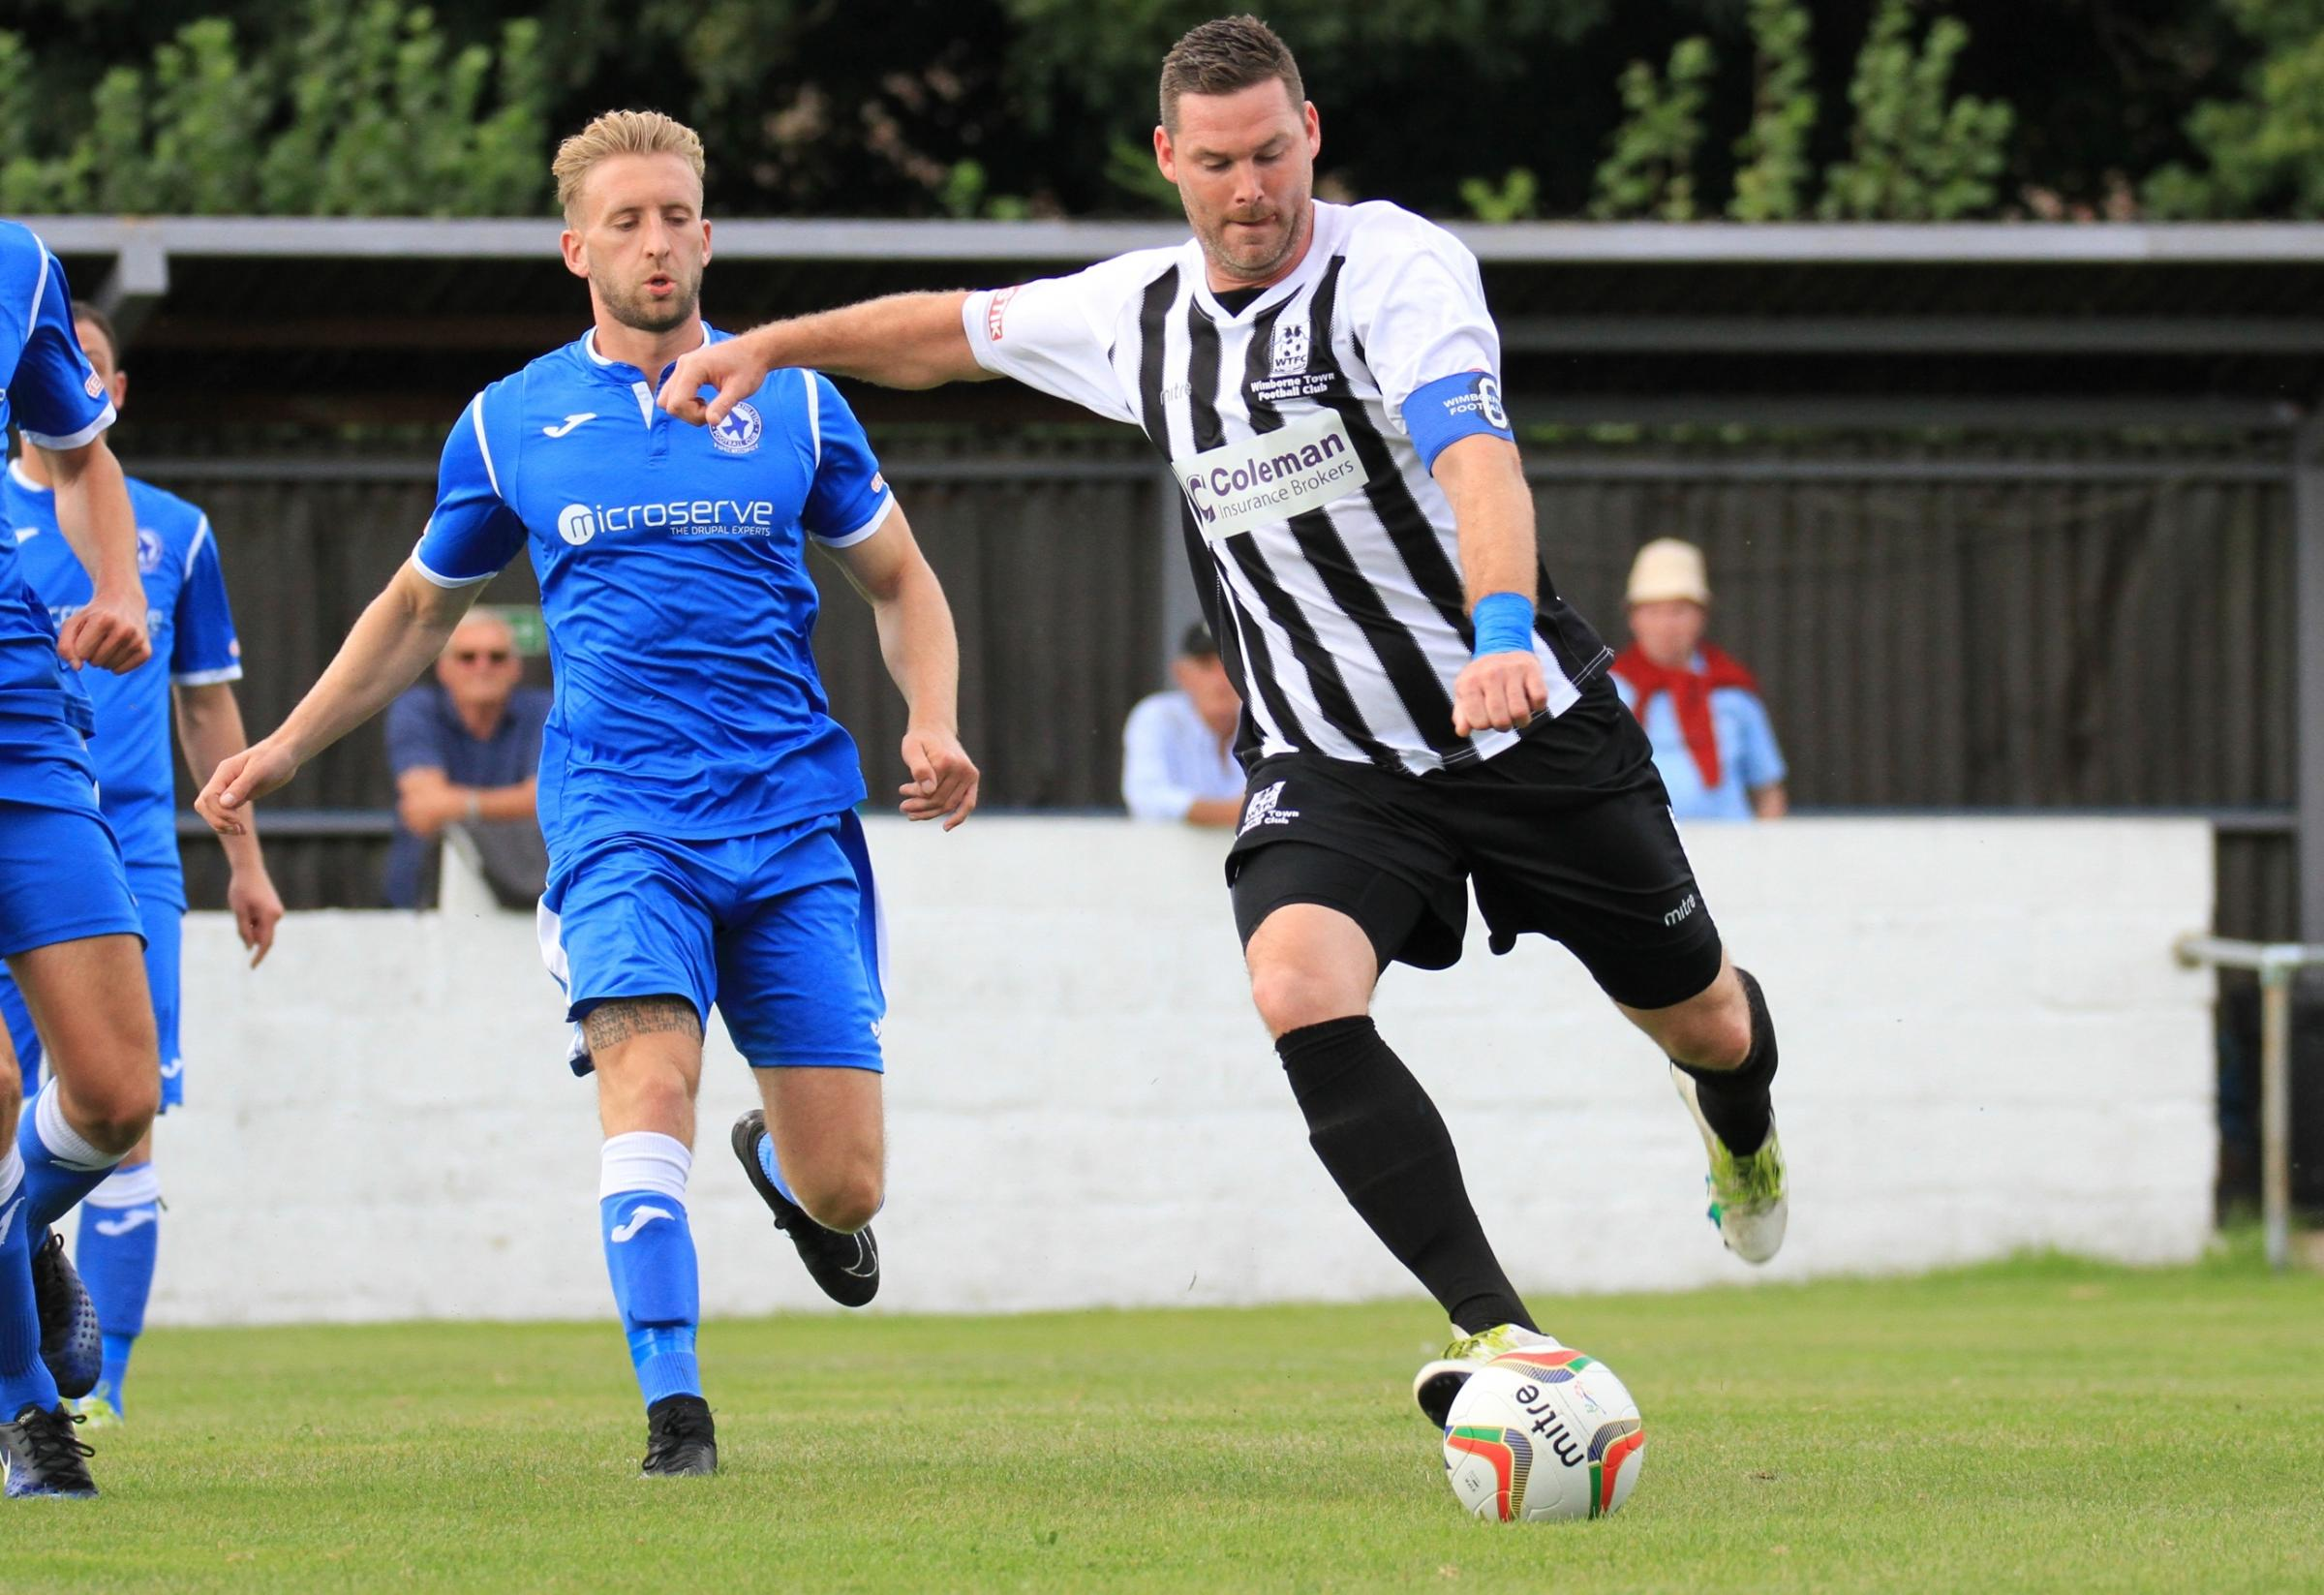 TON-UP: Wimborne Town's James Stokoe scored his 100th goal for the club this week (Picture: Steve Harris)